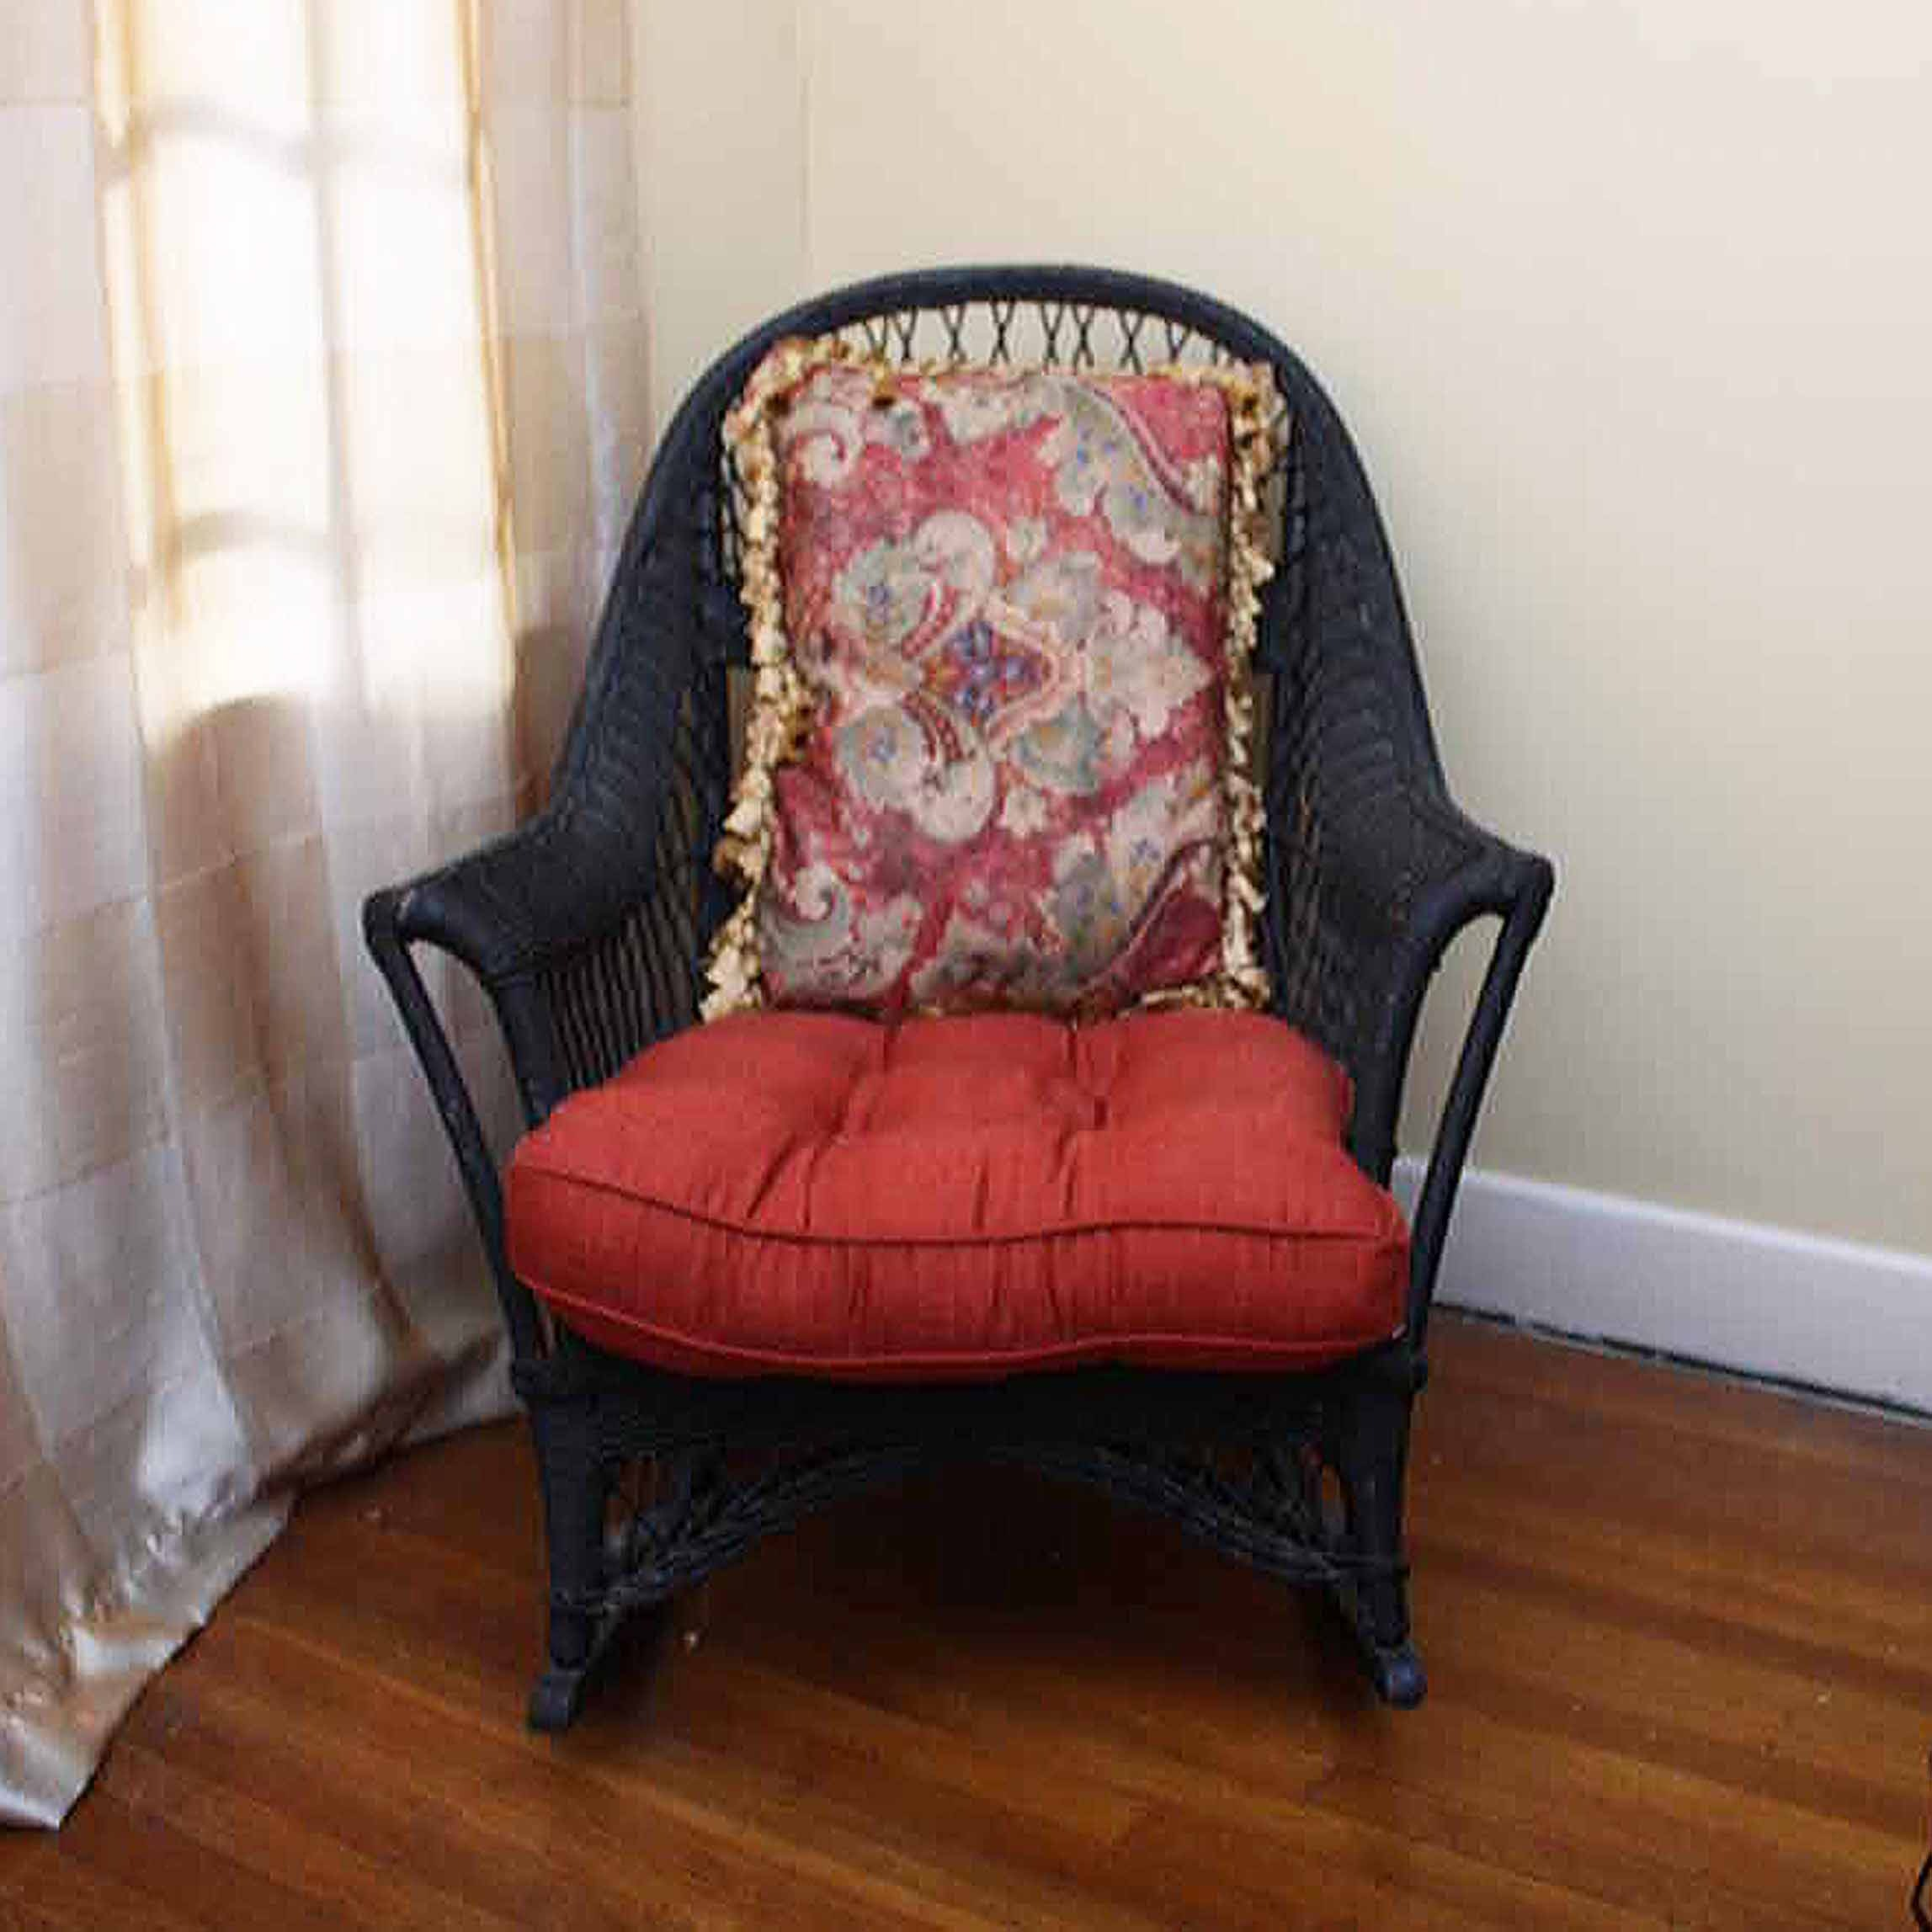 Black Wicker Rocking Chair with Cushions